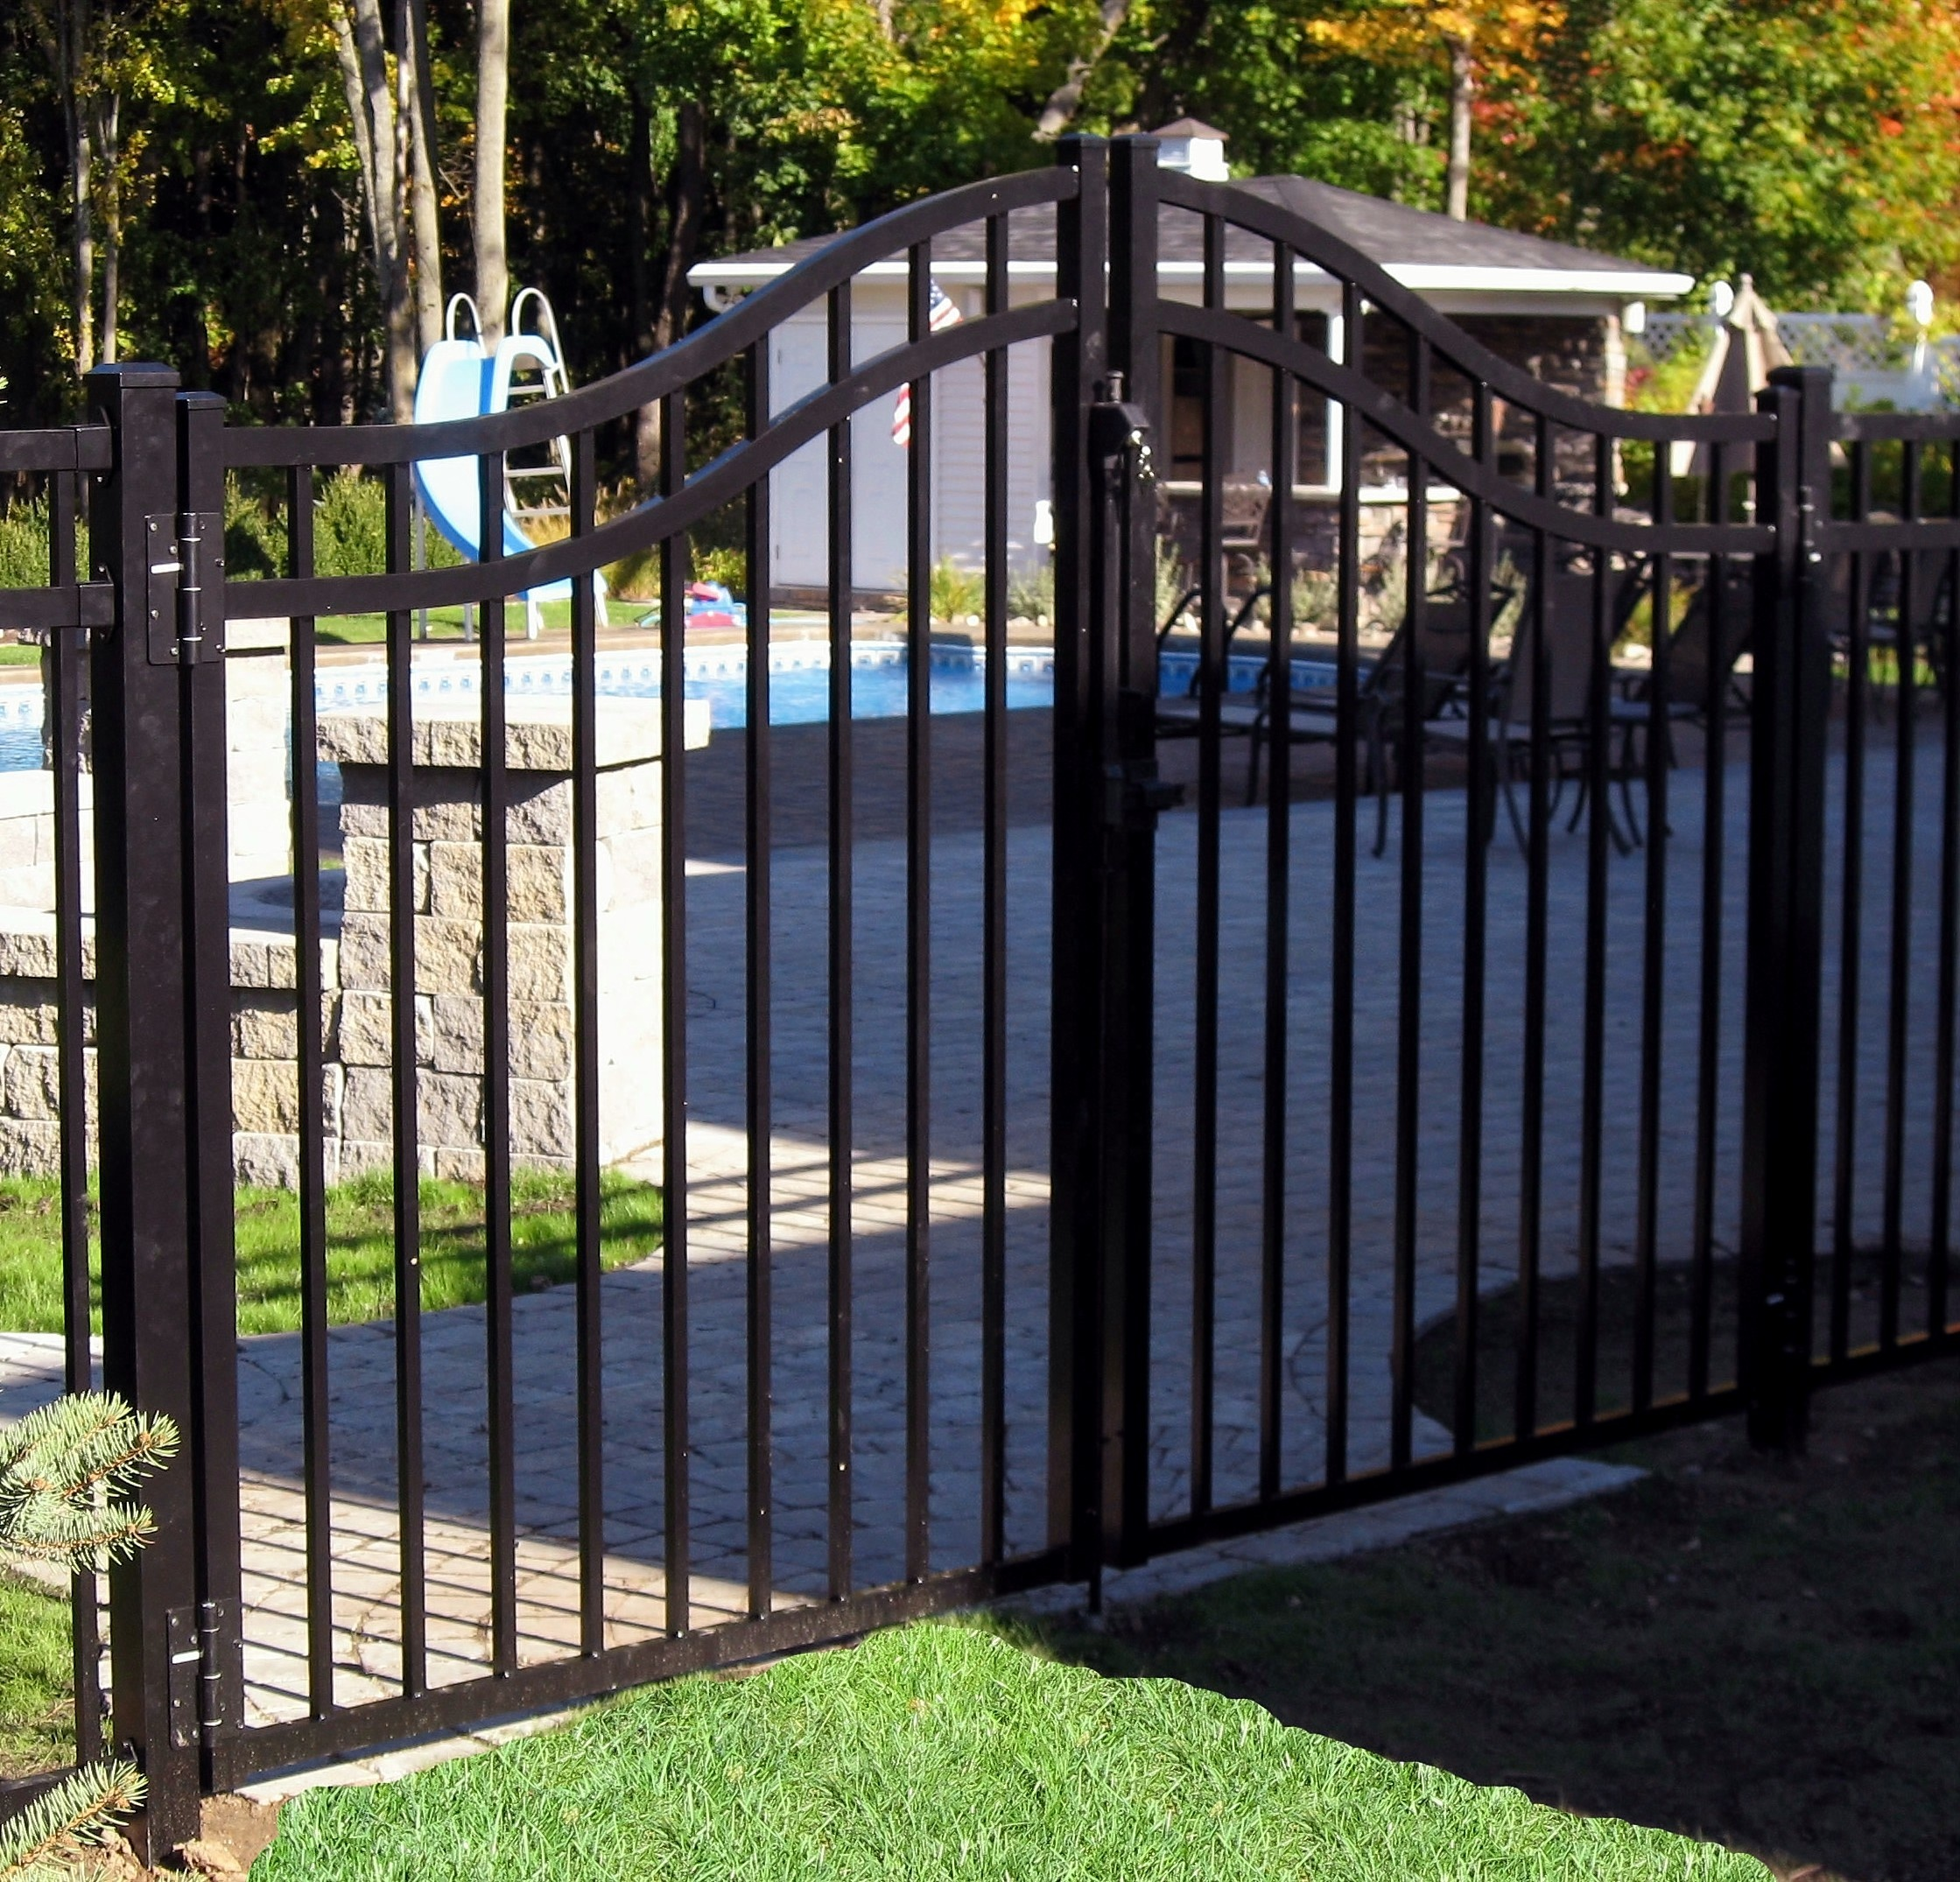 House Main Gate Designs Sliding Gate Design View Steel Gate Designs Oumei Product Details From Foshan Cxoumei Technology Co Ltd On Alibaba Com